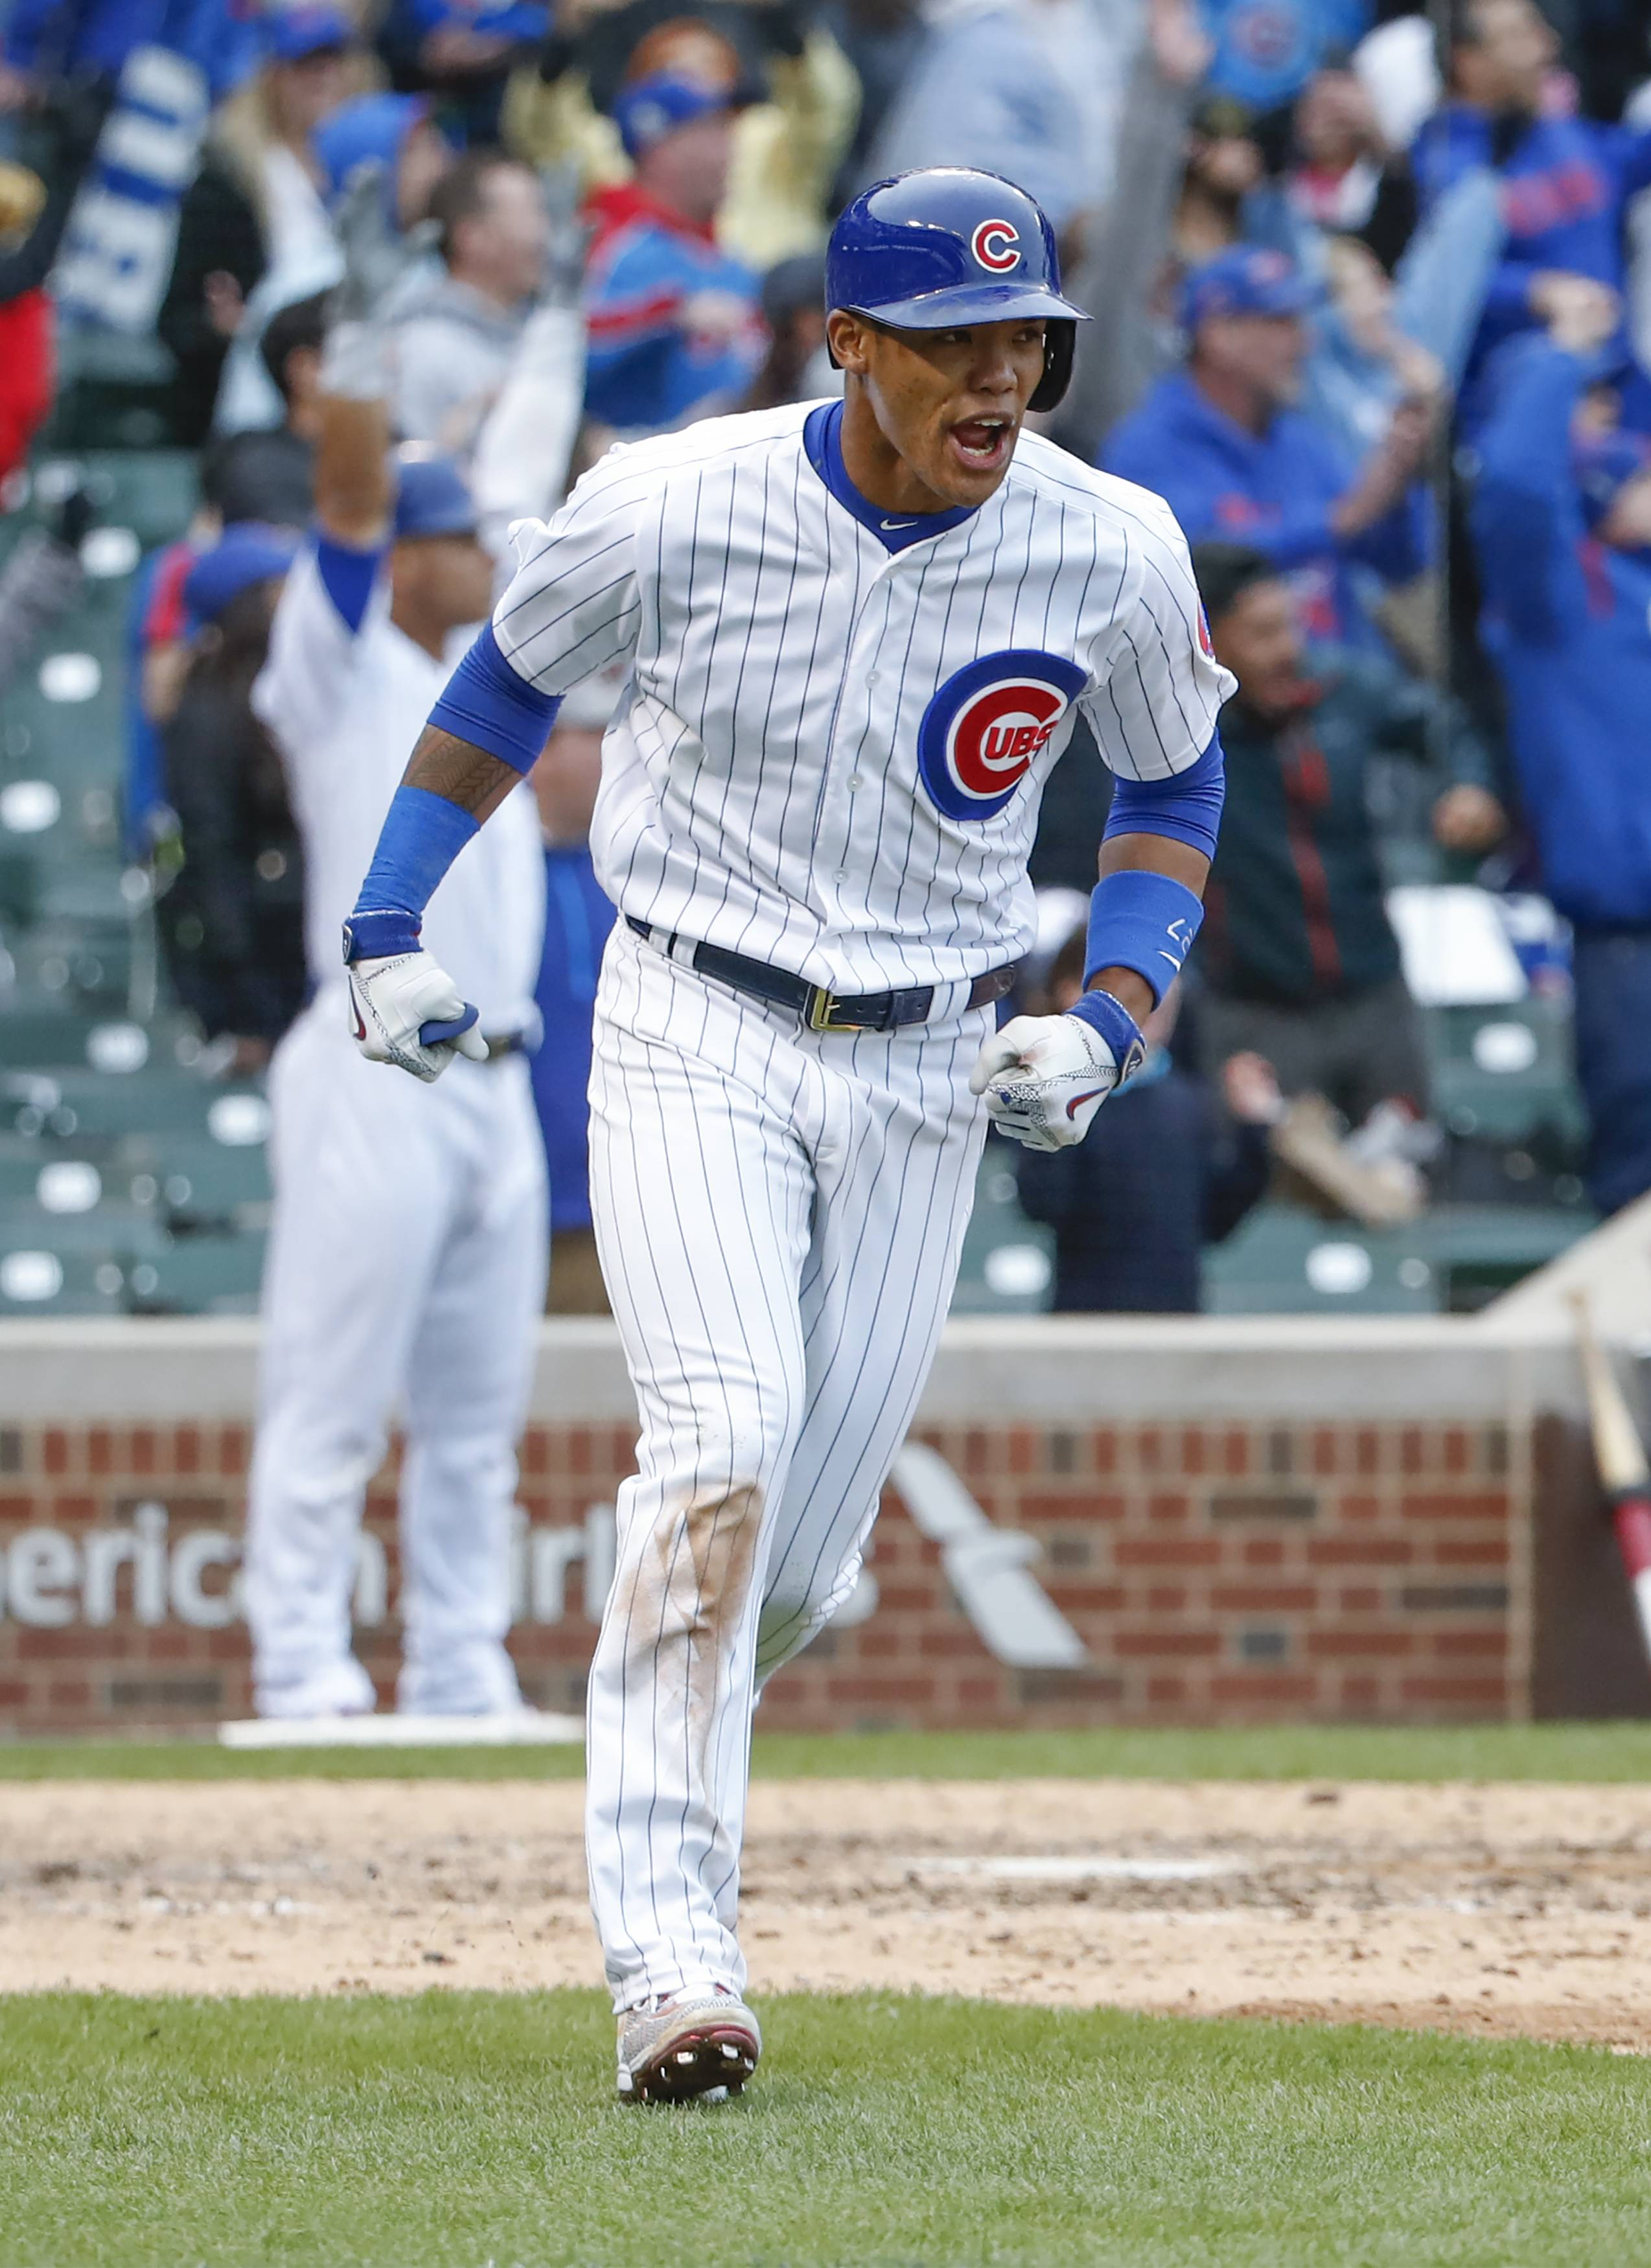 The Chicago Cubs rallied again Wednesday when Addison Russell hit a 3-run walk-off homer in the bottom of the ninth inning to give the Cubs a 7-4 victory over the Milwaukee Brewers.